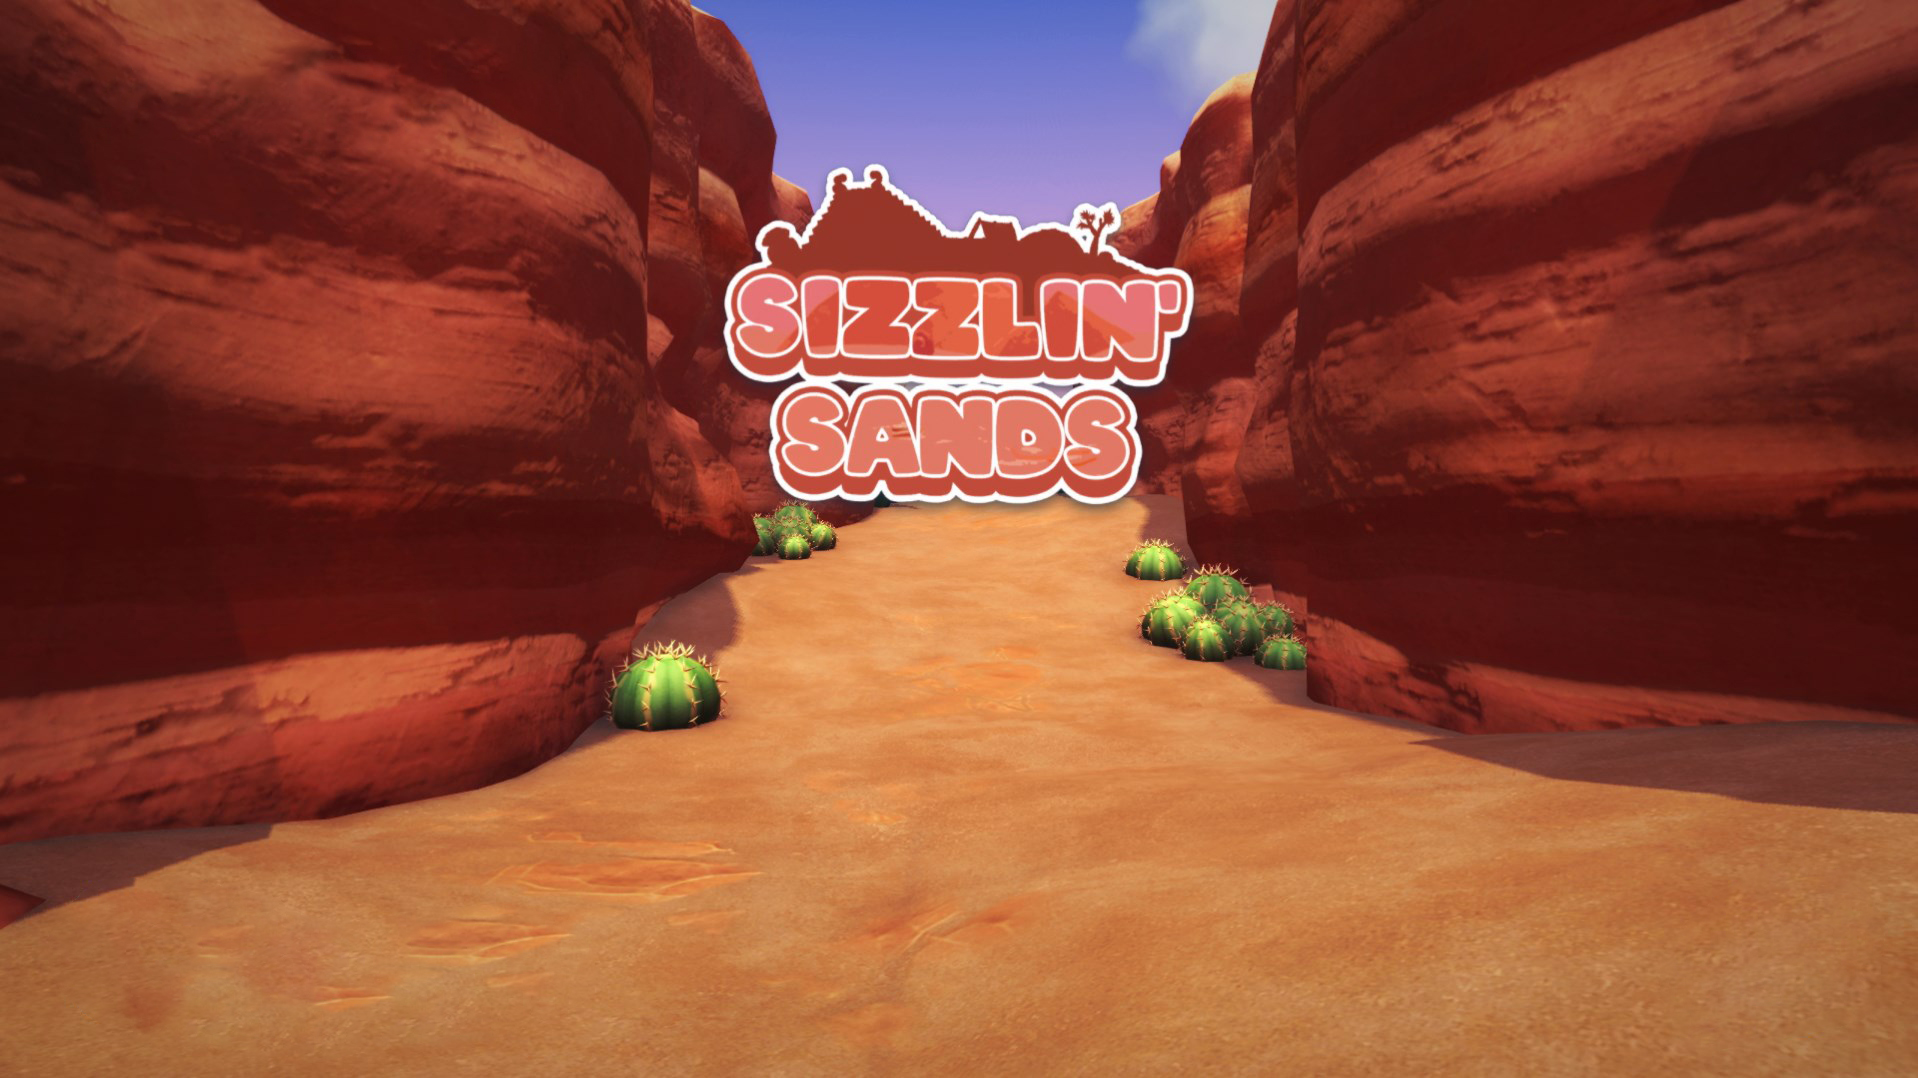 """Text that reads """"Sizzlin' Sands"""" over an entrance to a desert, complete with cacti"""